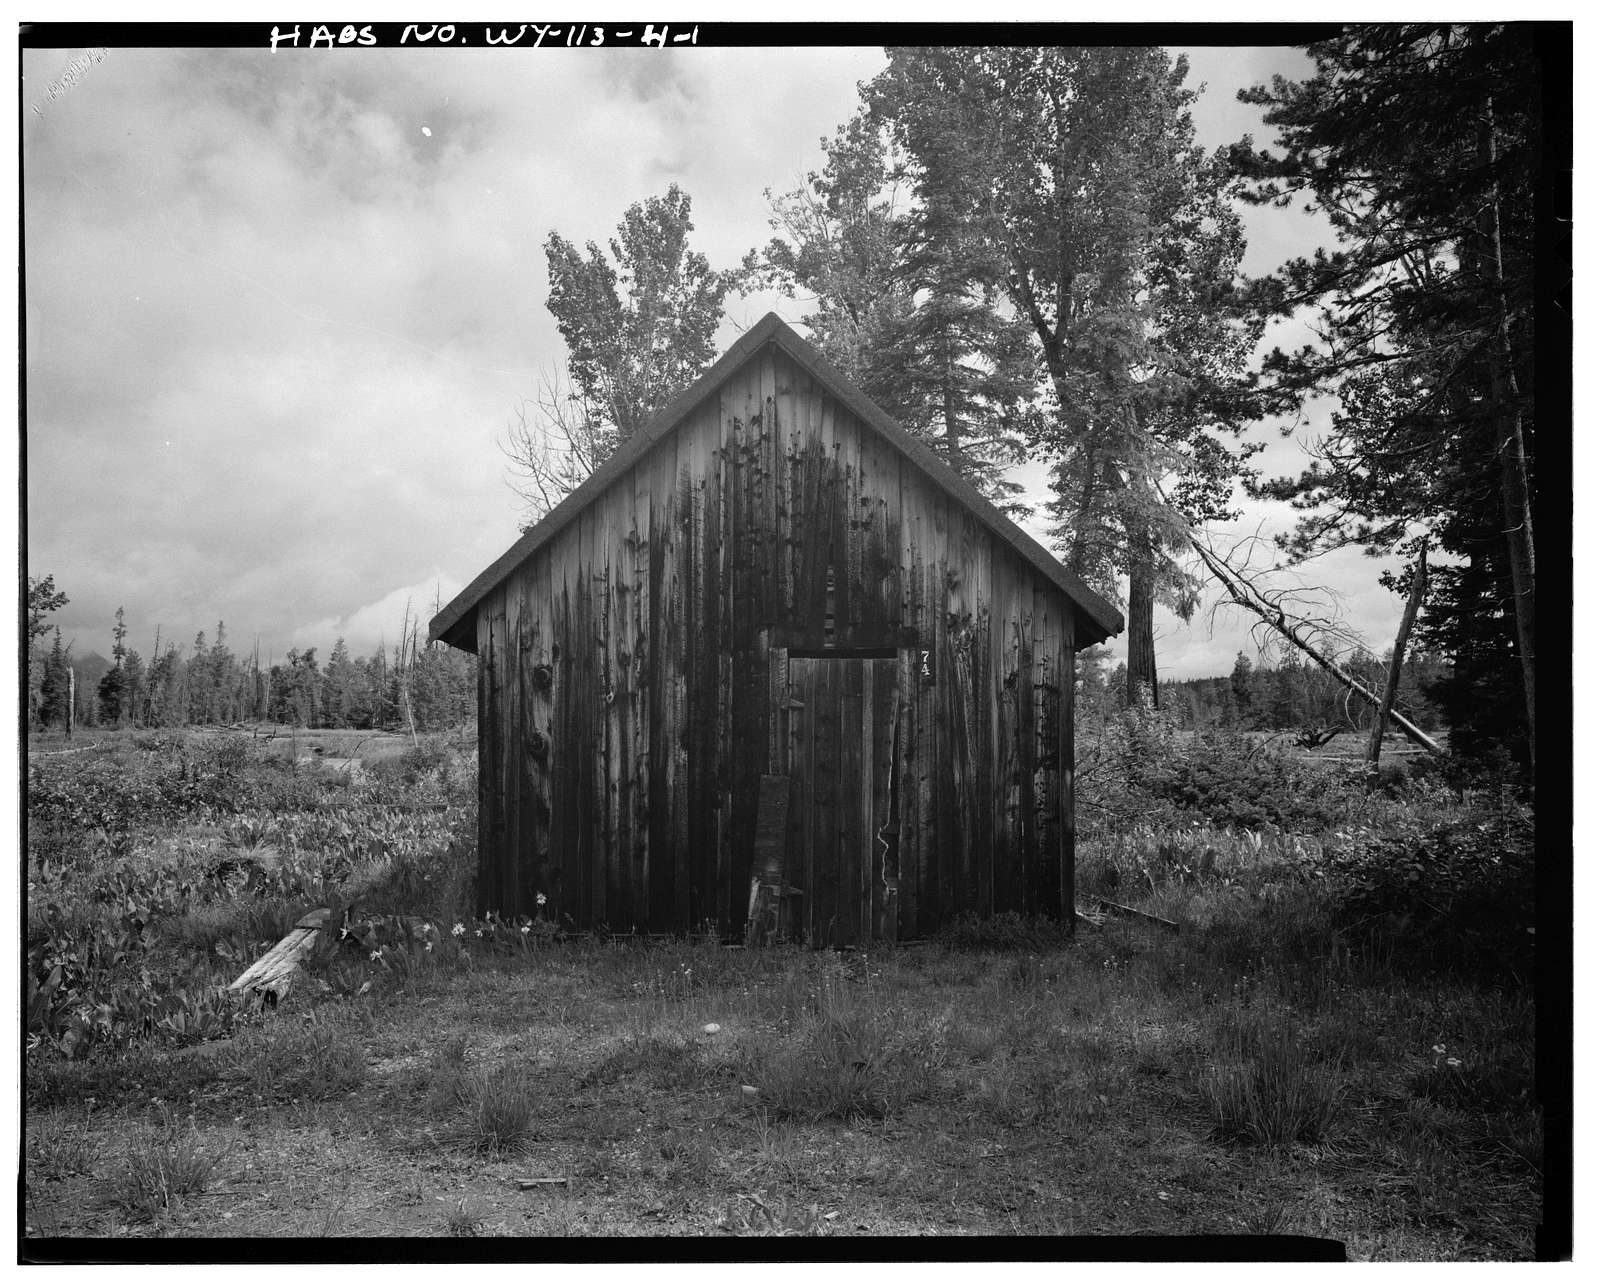 Geraldine Lucas Homestead, Tool House, West bank Cottonwood Creek, 2.5 miles downstream from Jenny Lake, Moose, Teton County, WY